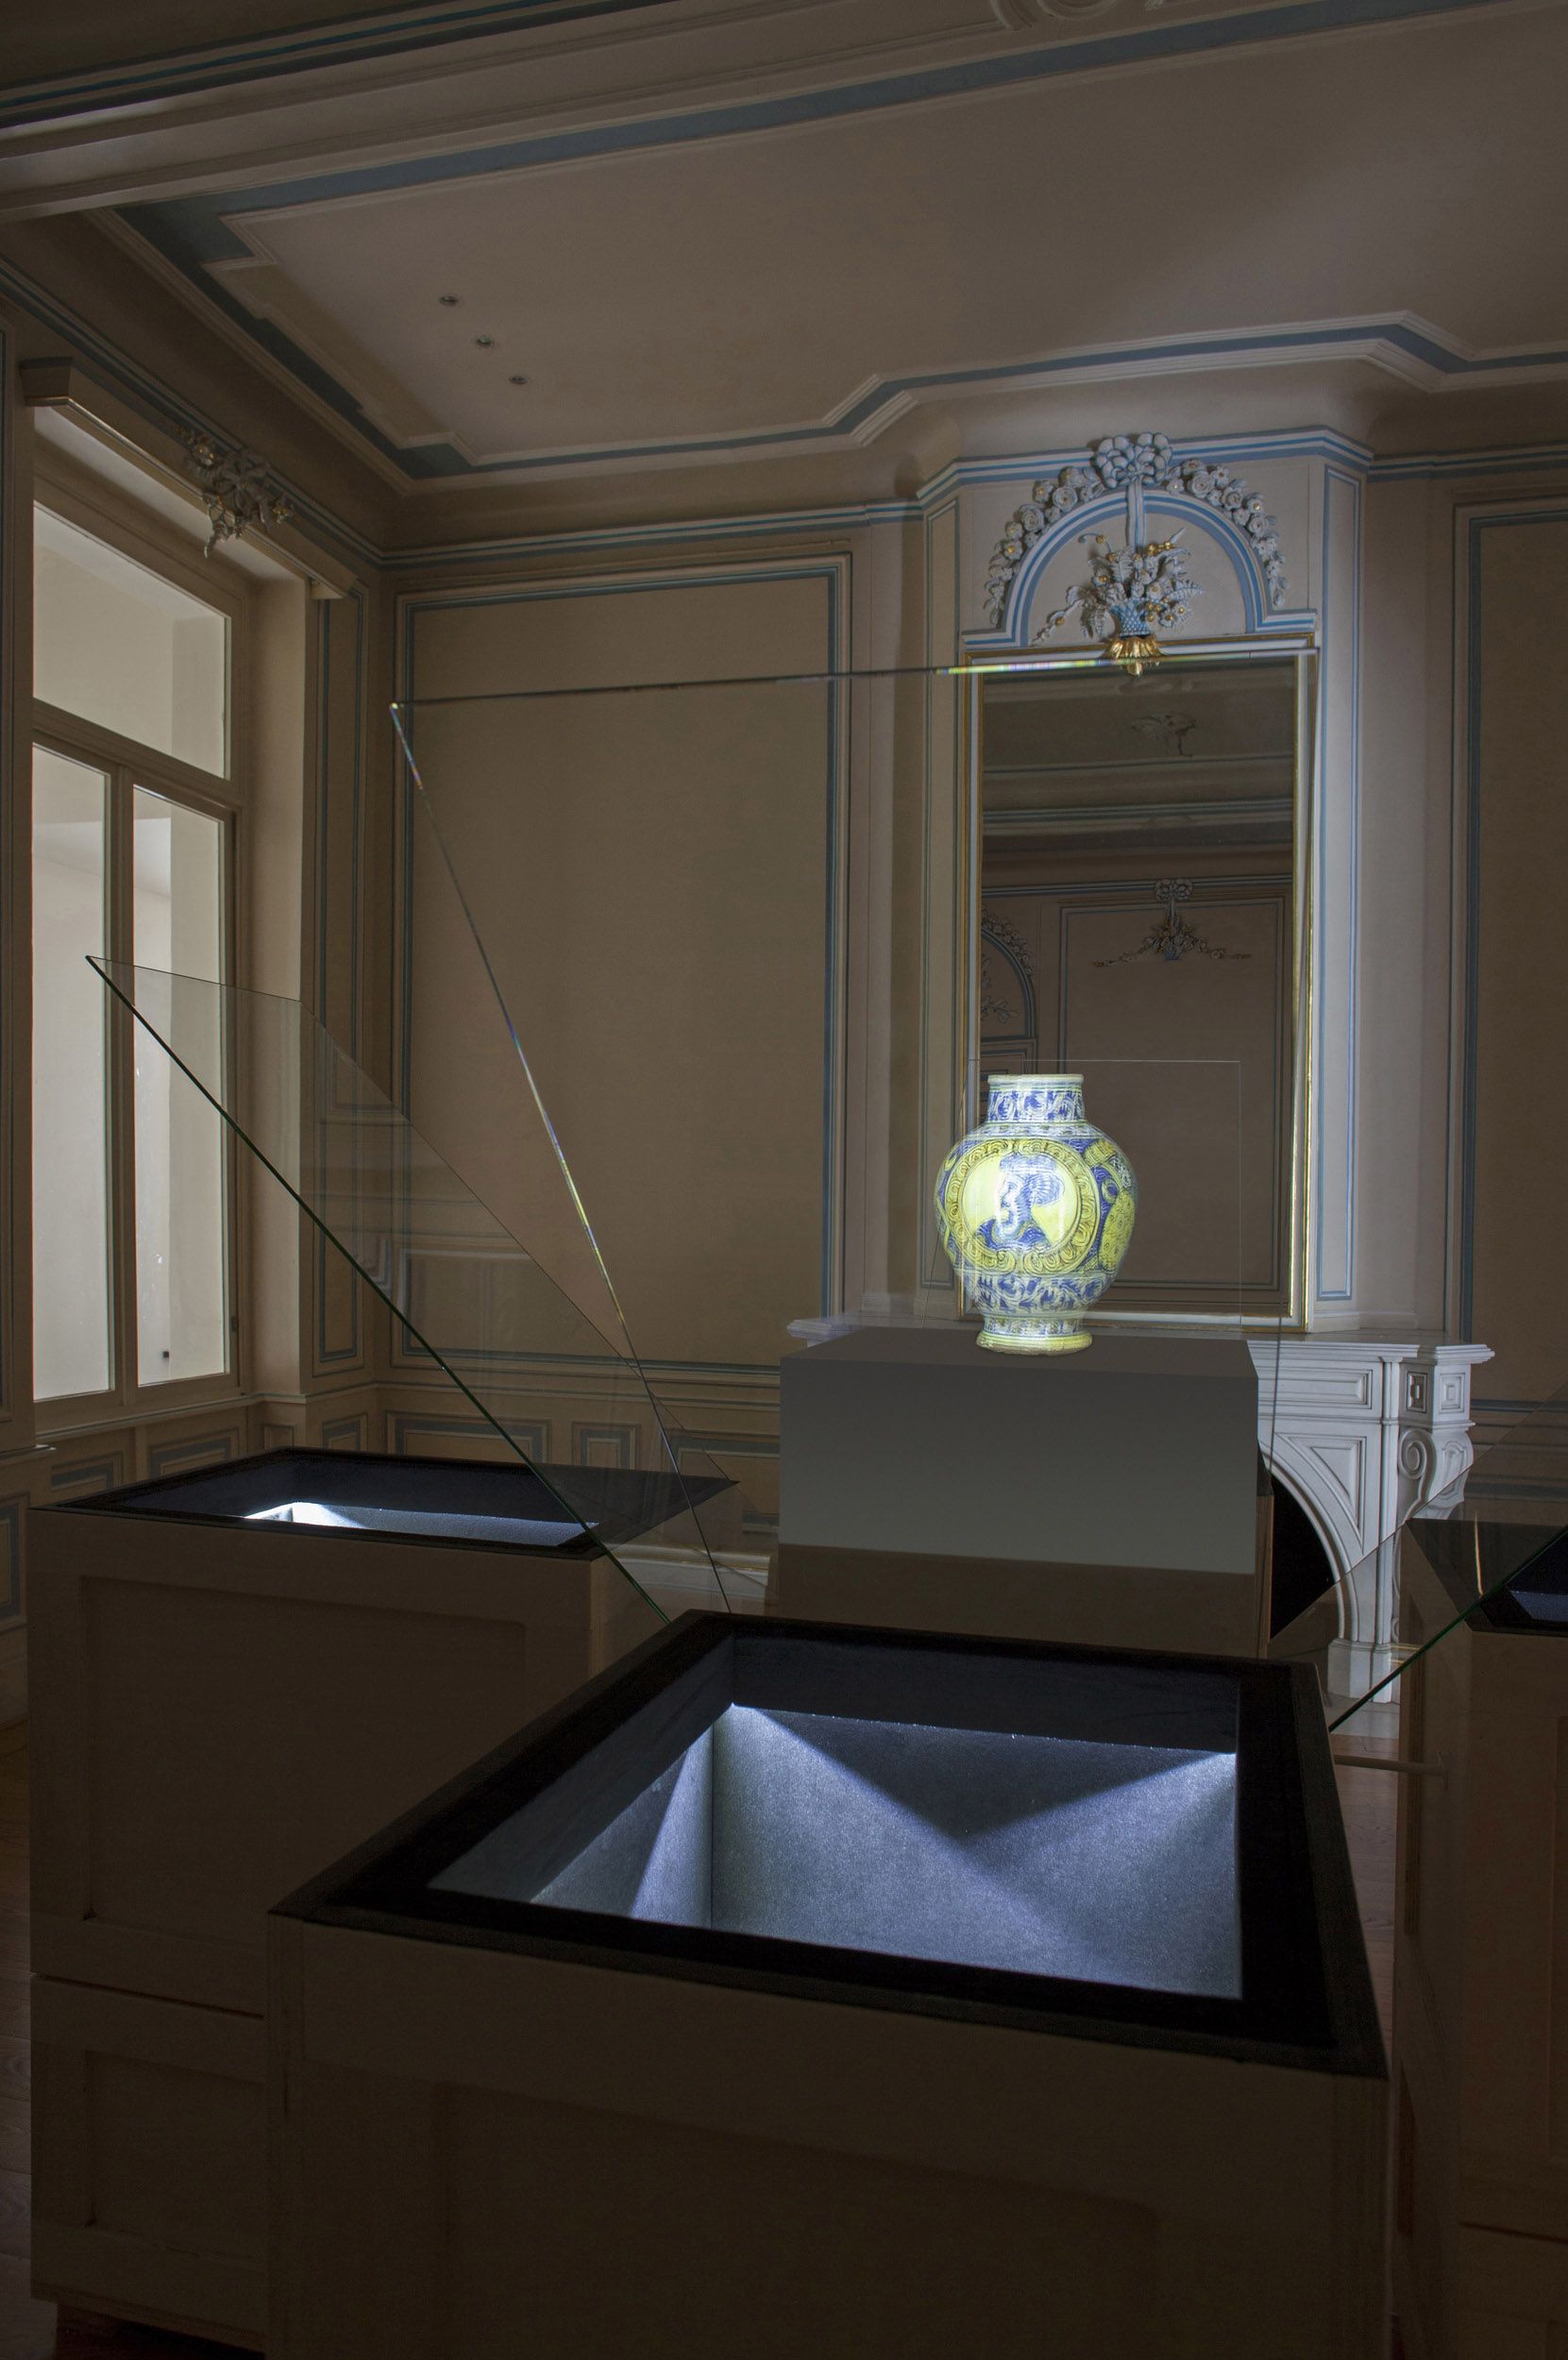 A reflected vase appears on a plinth